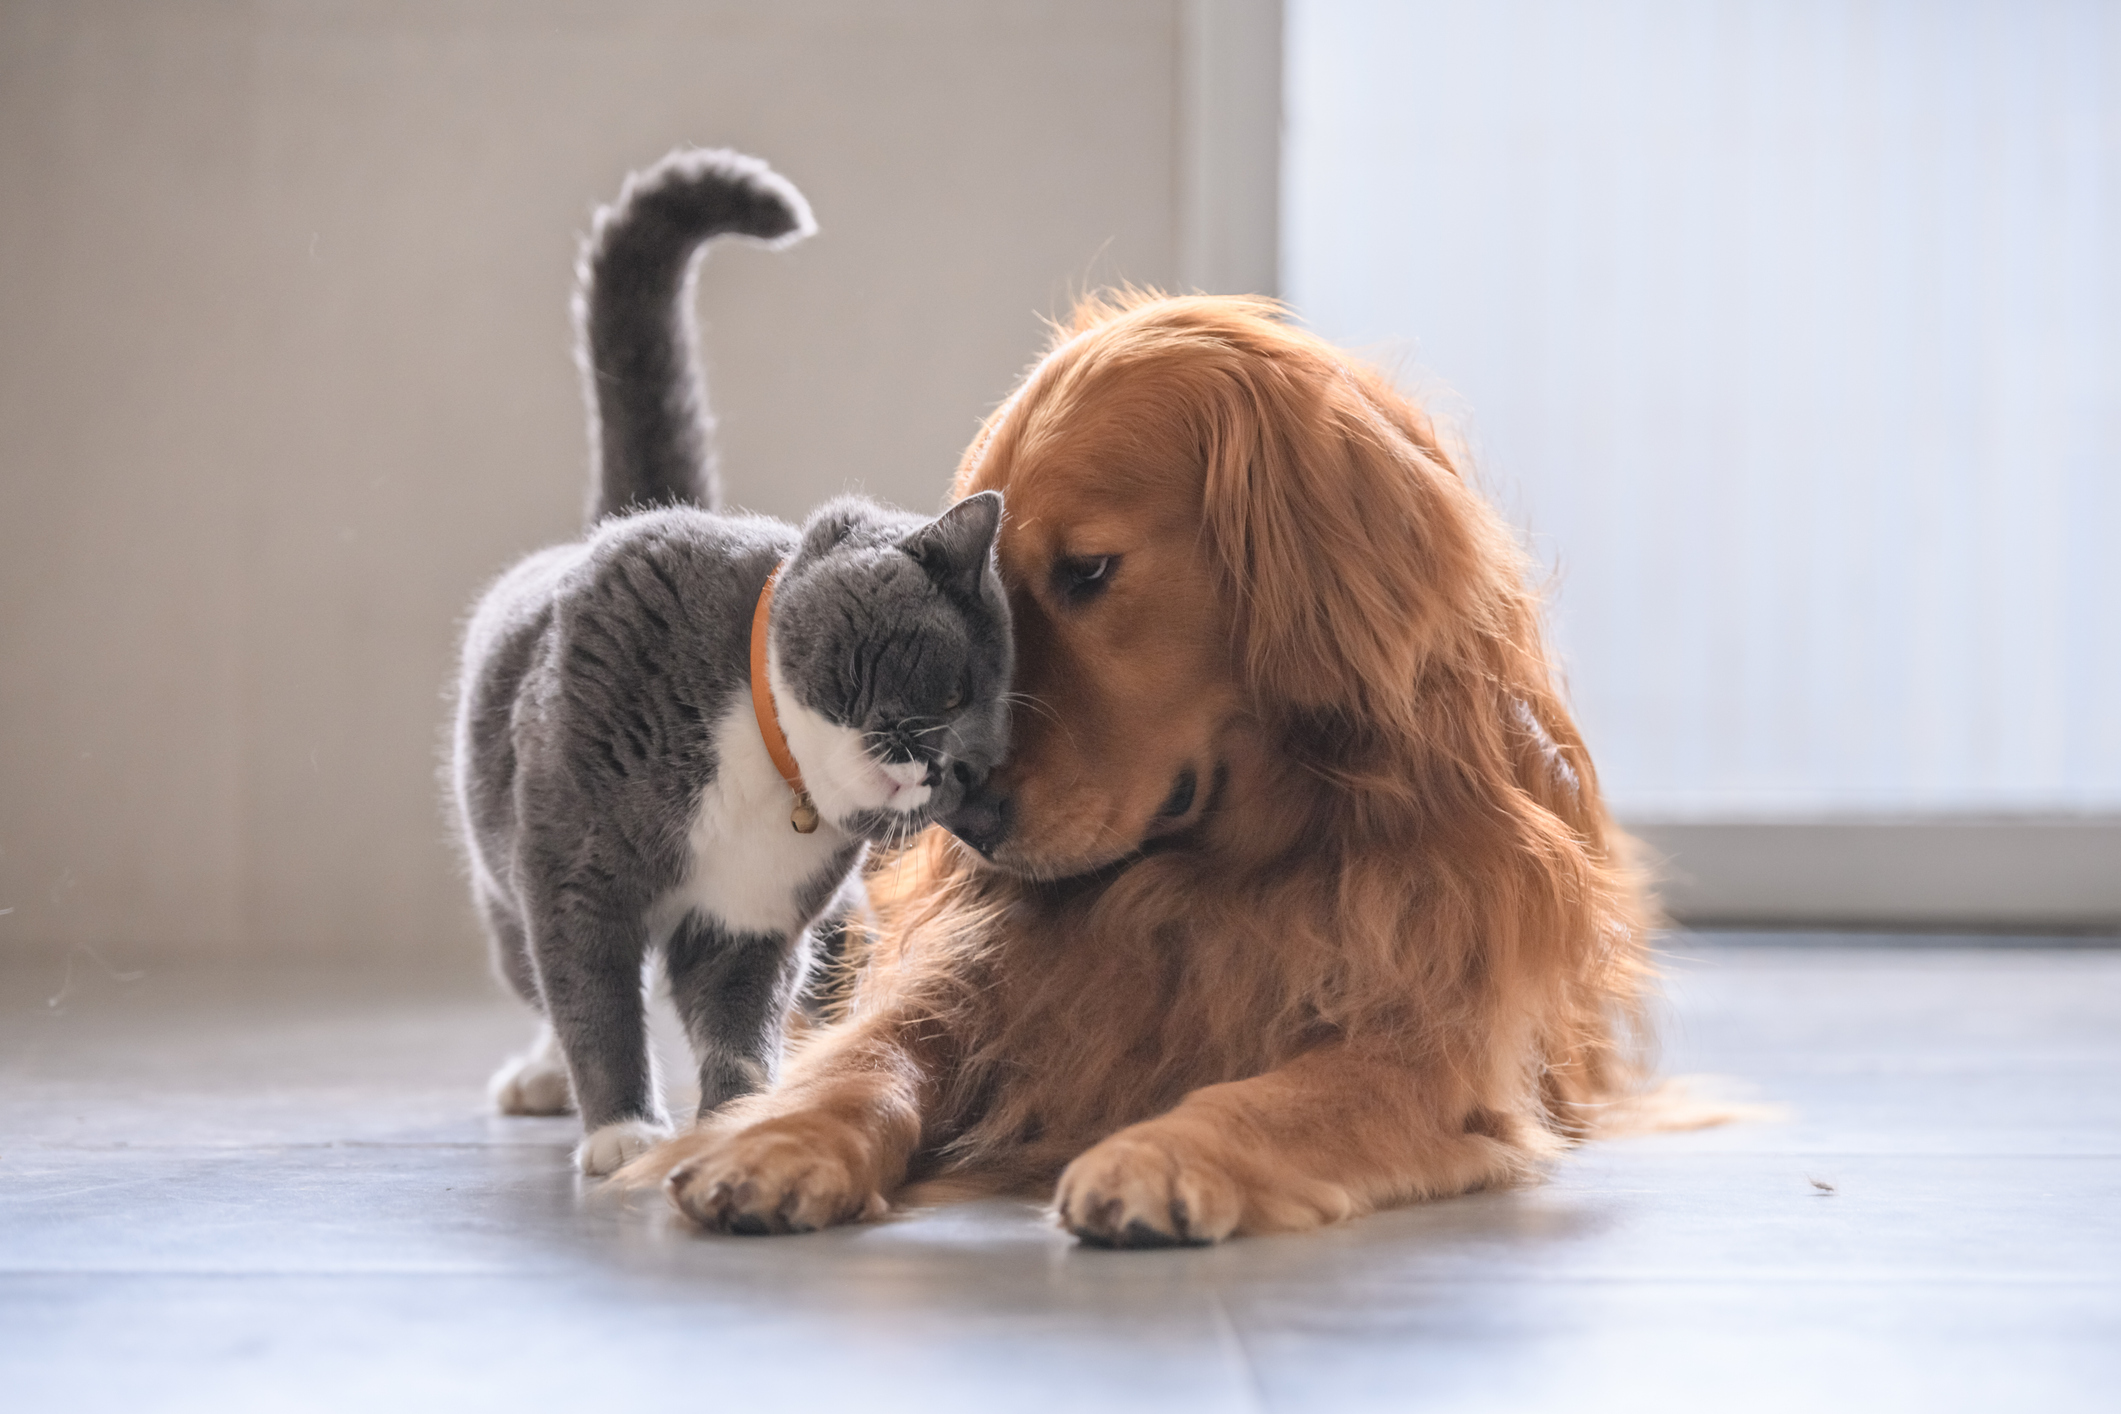 International Cat Day: Why Cats are Better than Dogs, According to